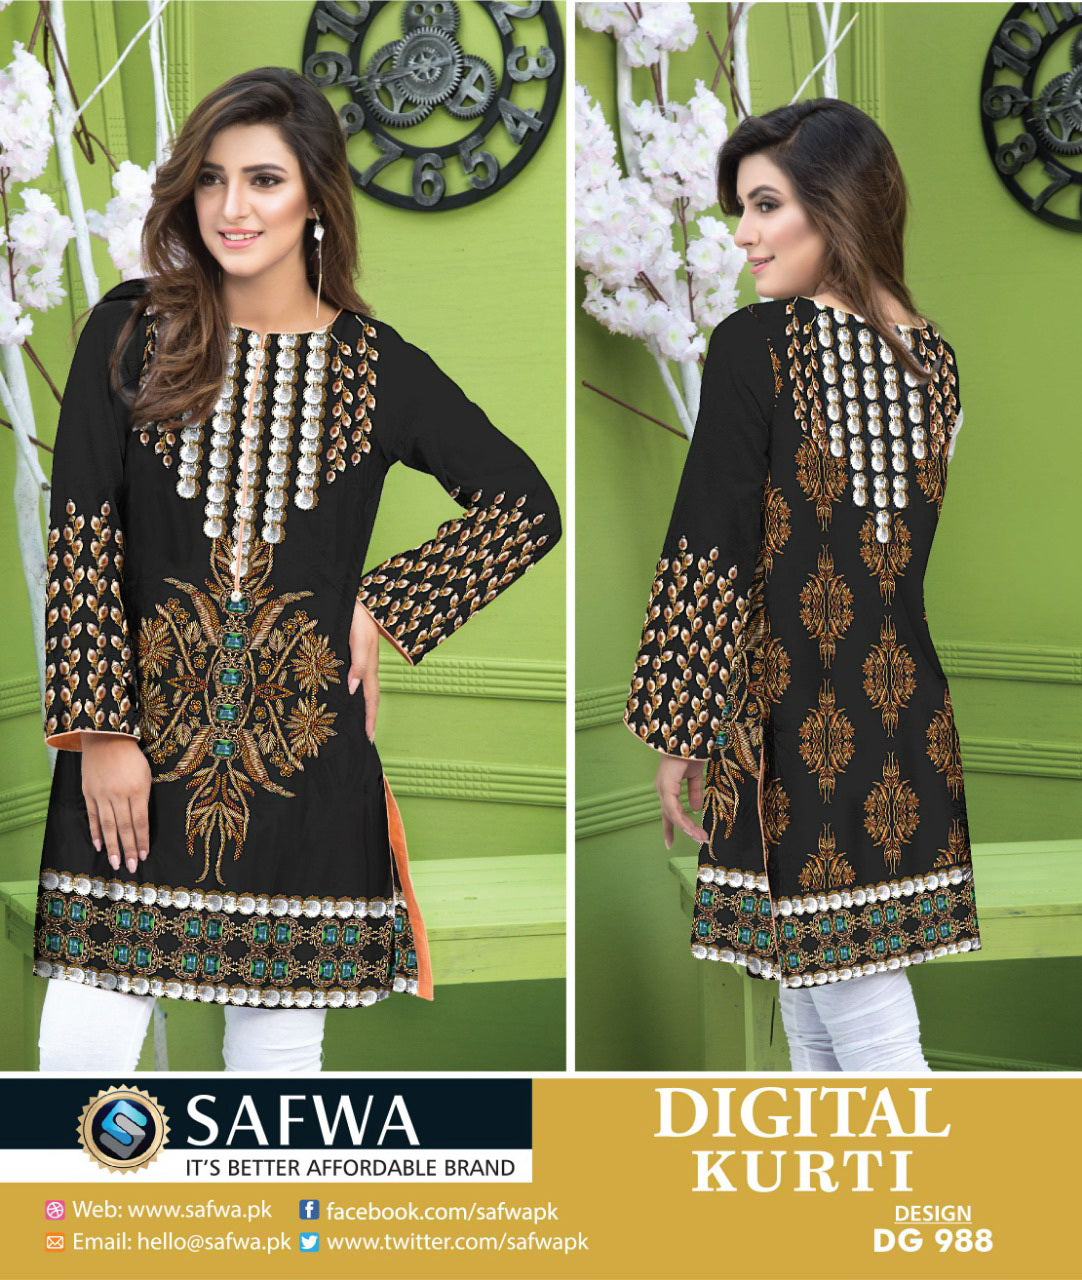 SAFWA DRESS DESIGN, DRESSES, PAKISTANI DRESSES, DG988 - SAFWA DIGITAL COTTON PRINT KURTI COLLECTION -SHIRT KURTI KAMEEZ-Shirt-Kurti-SAFWA -SAFWA Brand Pakistan online shopping for Designer Dresses